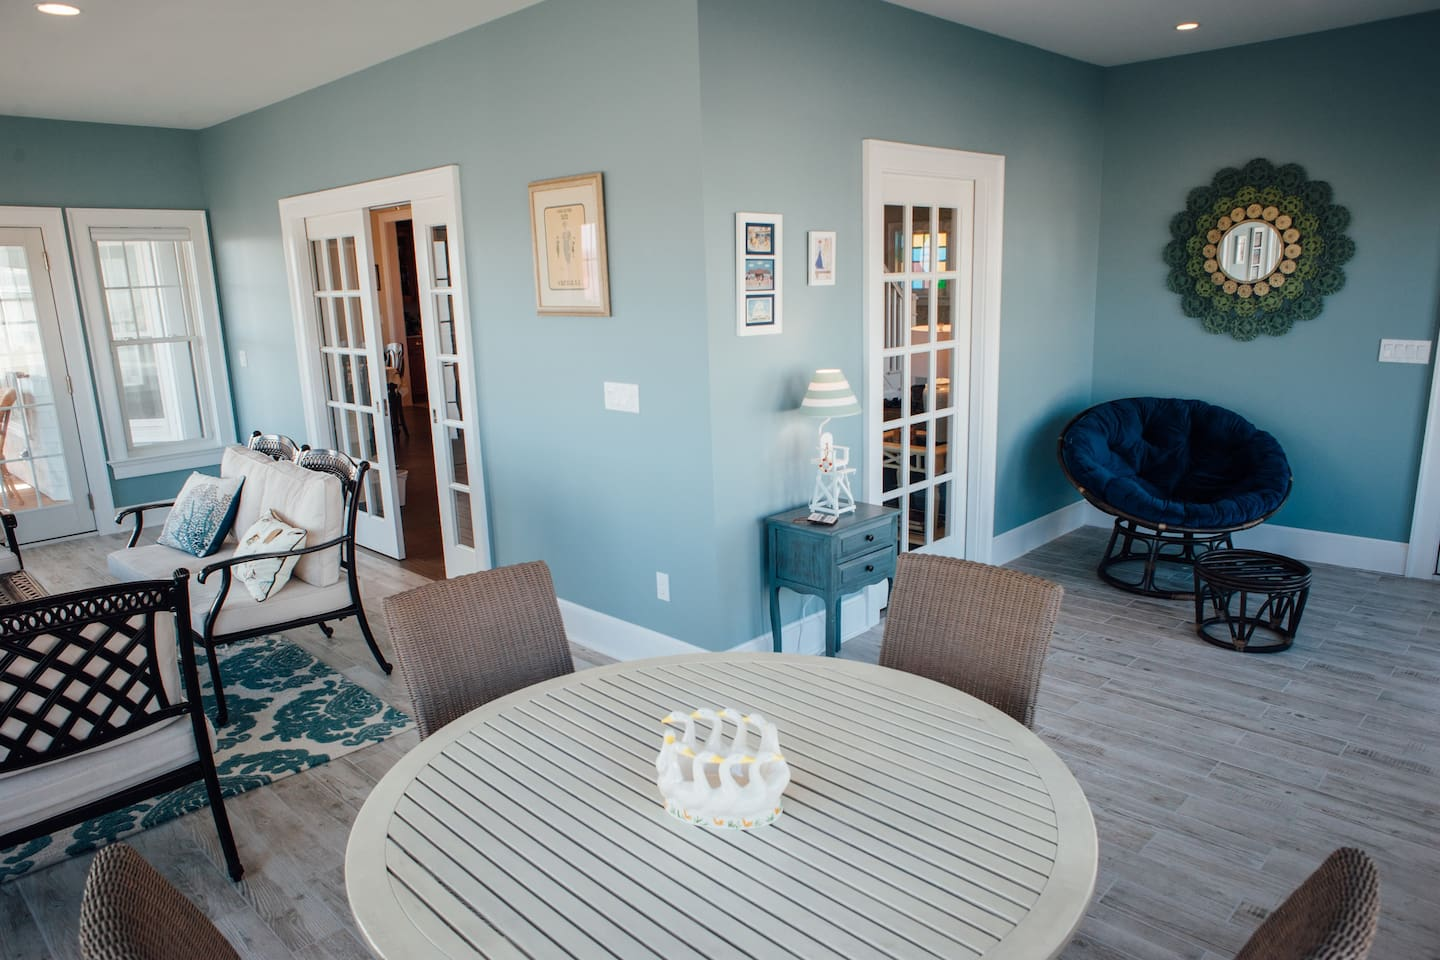 Our favorite spot: enjoy views of the sand and street from the beautiful enclosed porch.